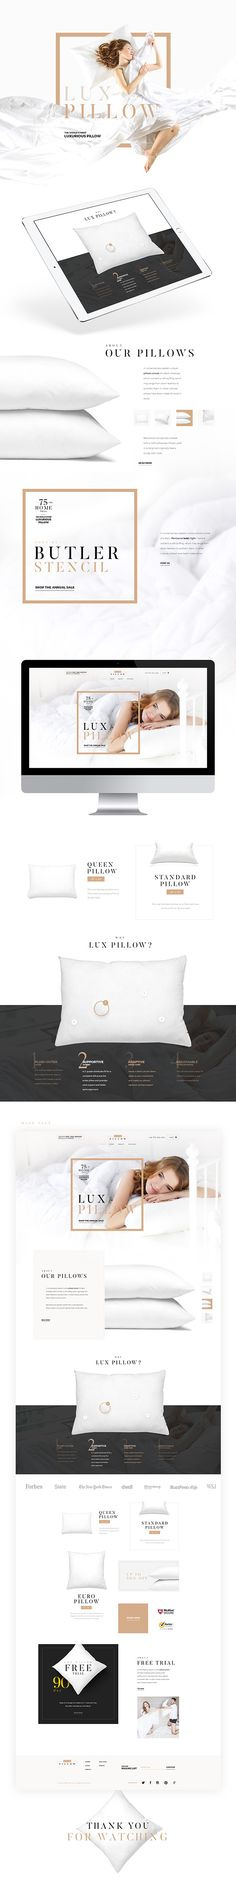 Web design. Modern website. Luxury pillow online shop. Design for sale.